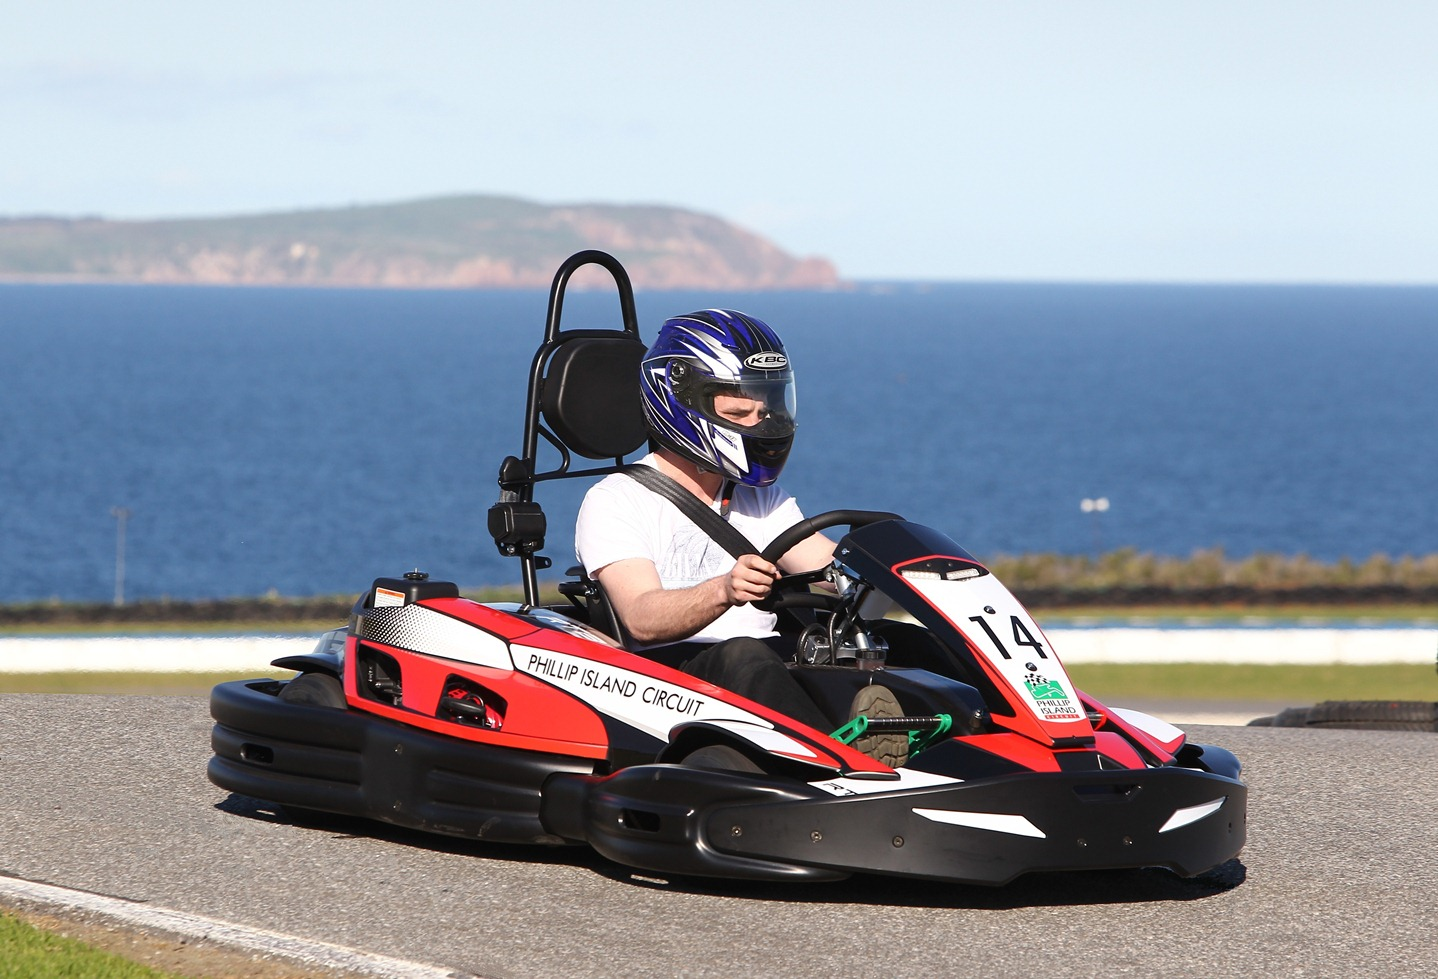 Phillip Island Grand Prix Circuit - Mackay Tourism